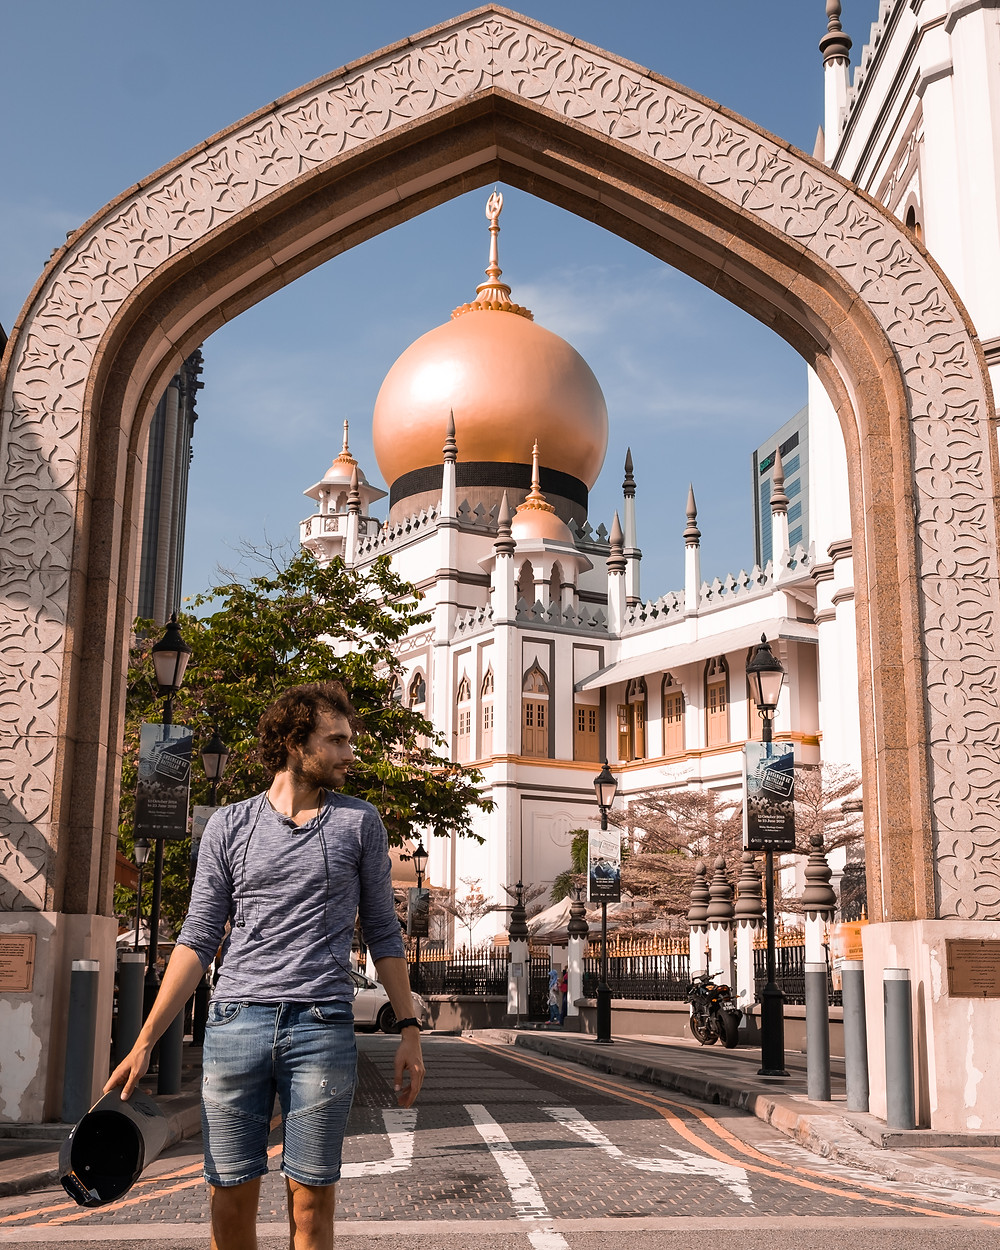 Instagrammable Singapore - Masjid Sultan Mosque